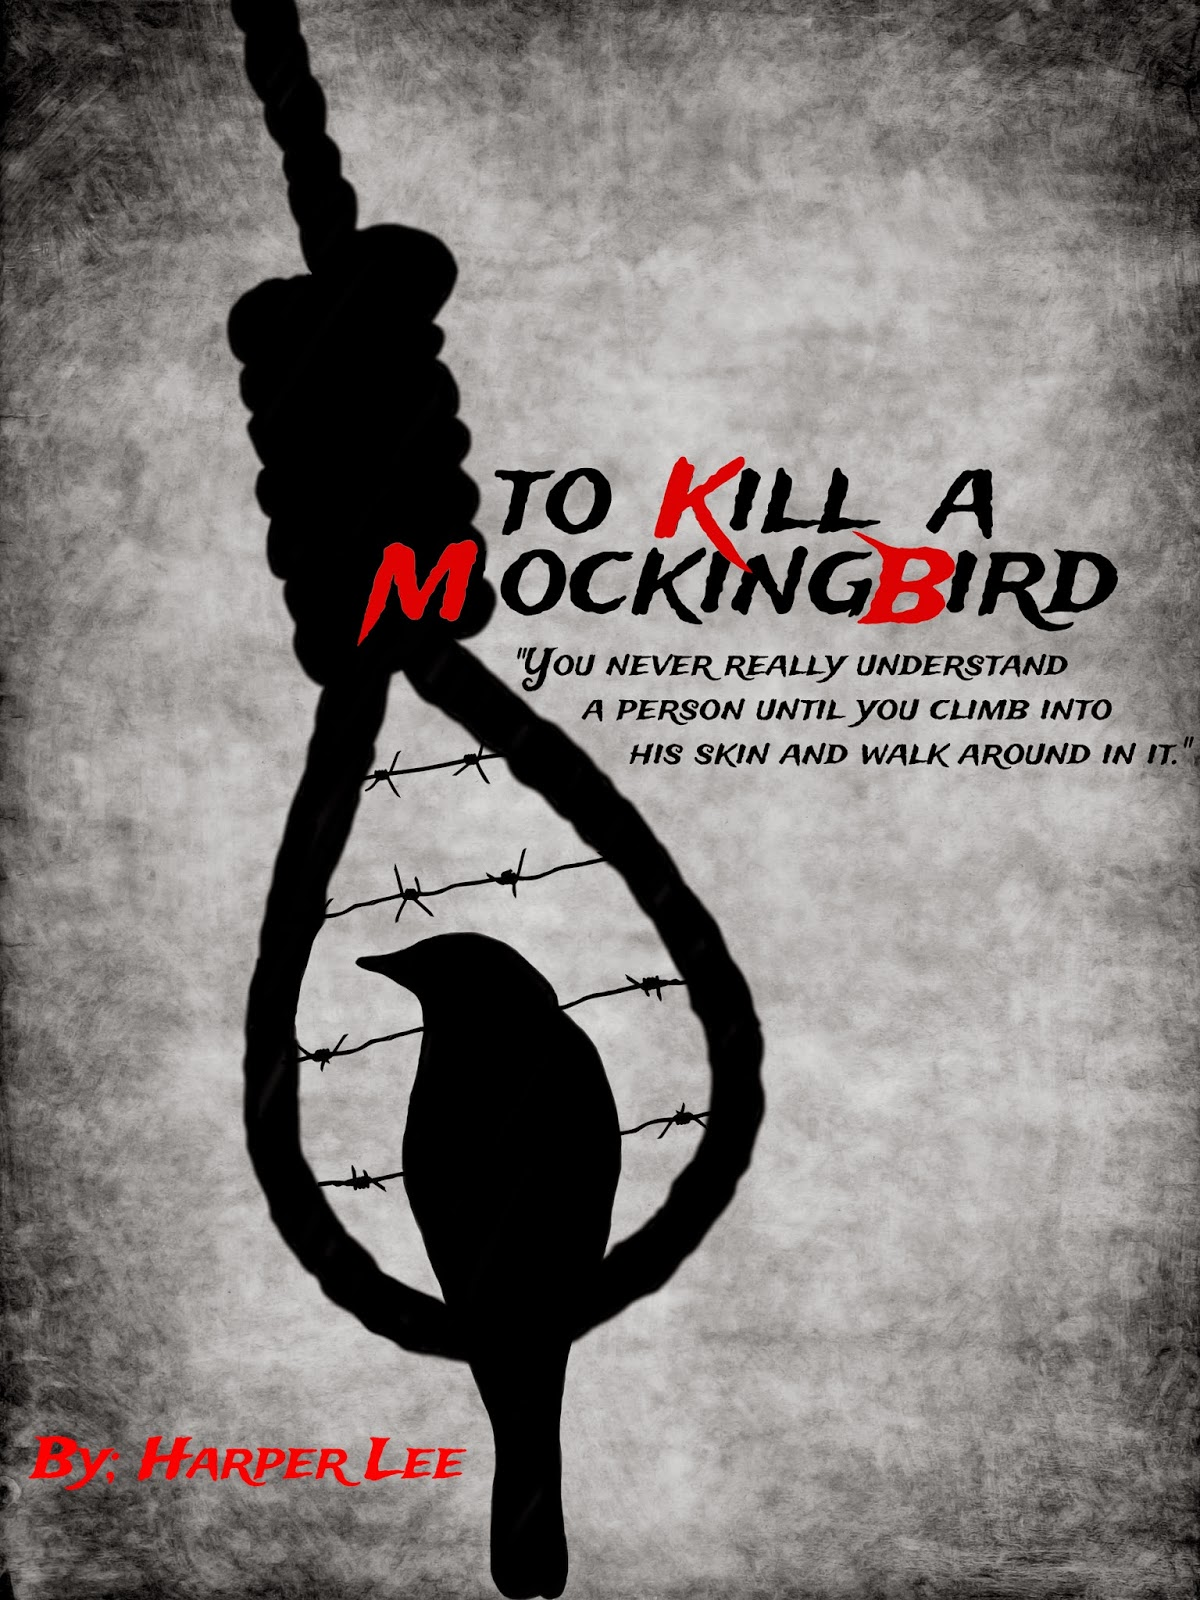 to kill a mockingbird and harper